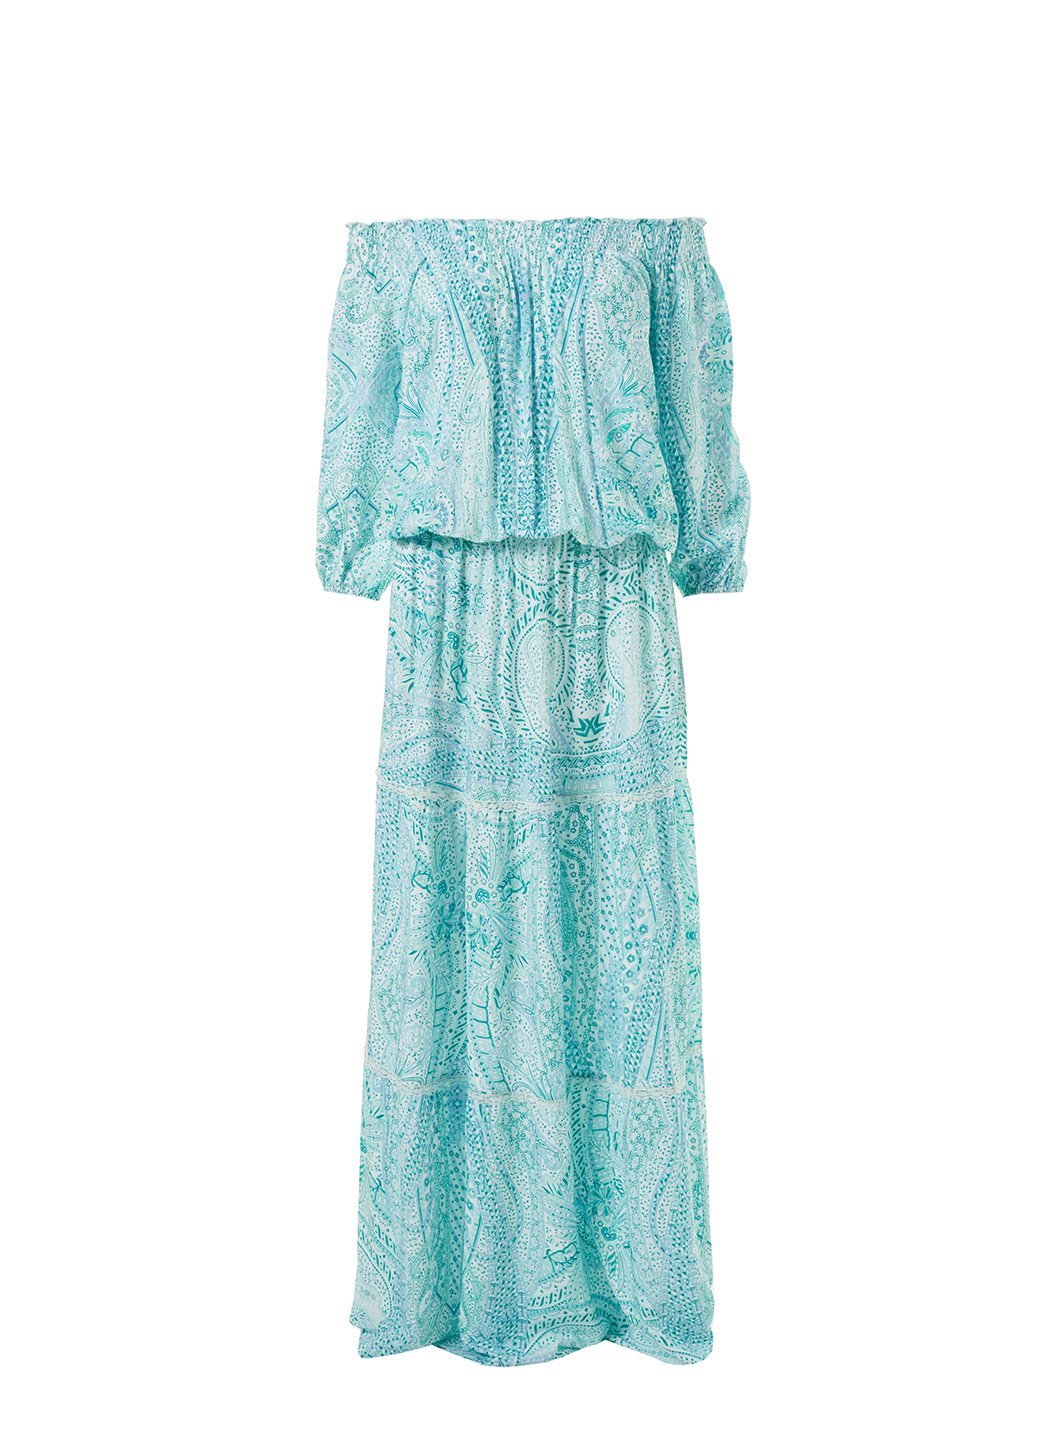 casey paisley offtheshoulder frill maxi dress 2019